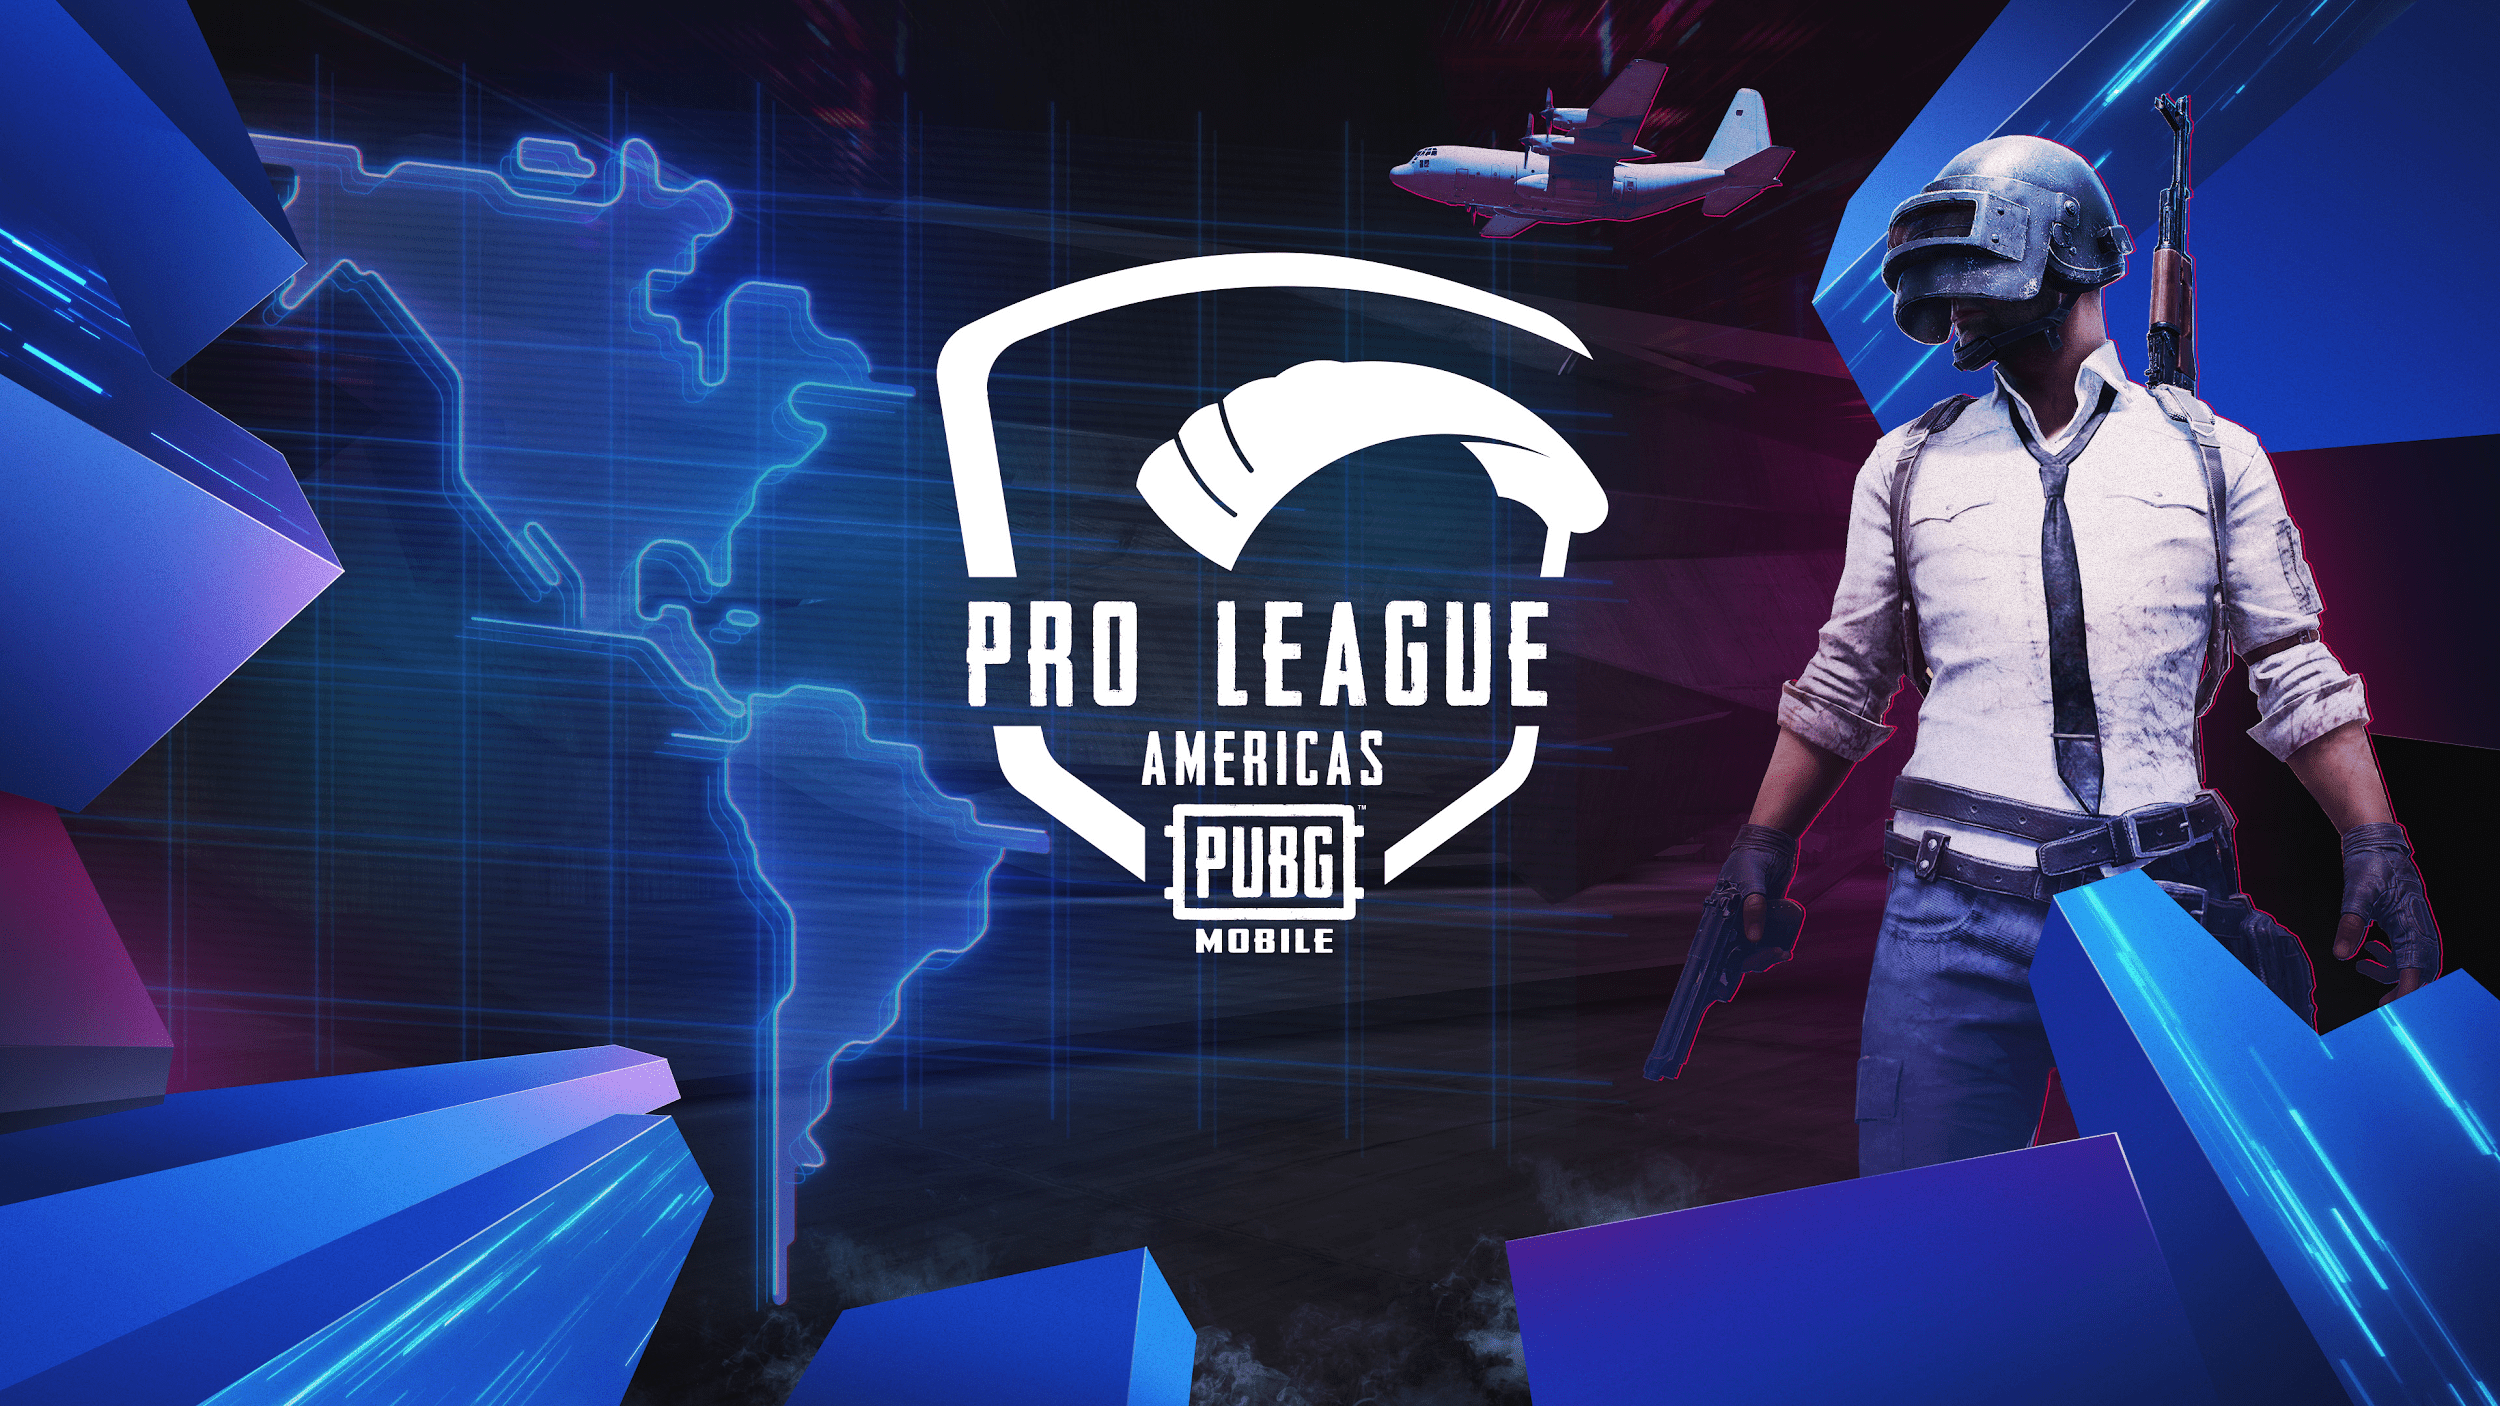 Pubg Mobile Pro League Americas